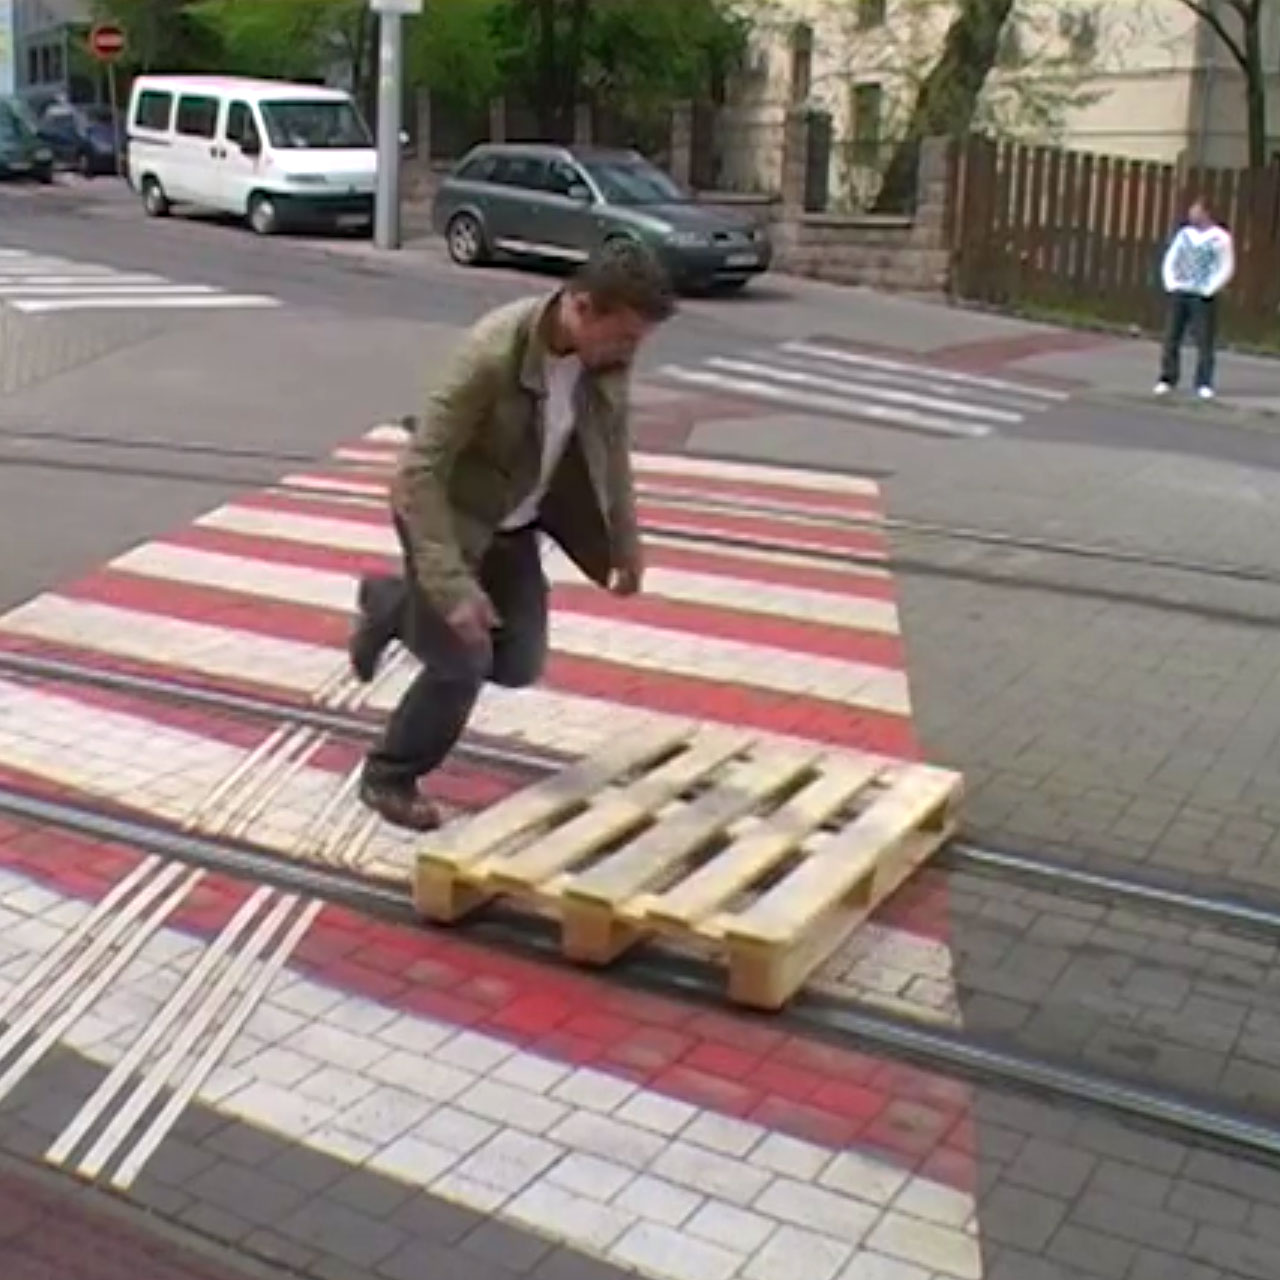 What the heck is palletboarding, and just who is Tomas Moravec?